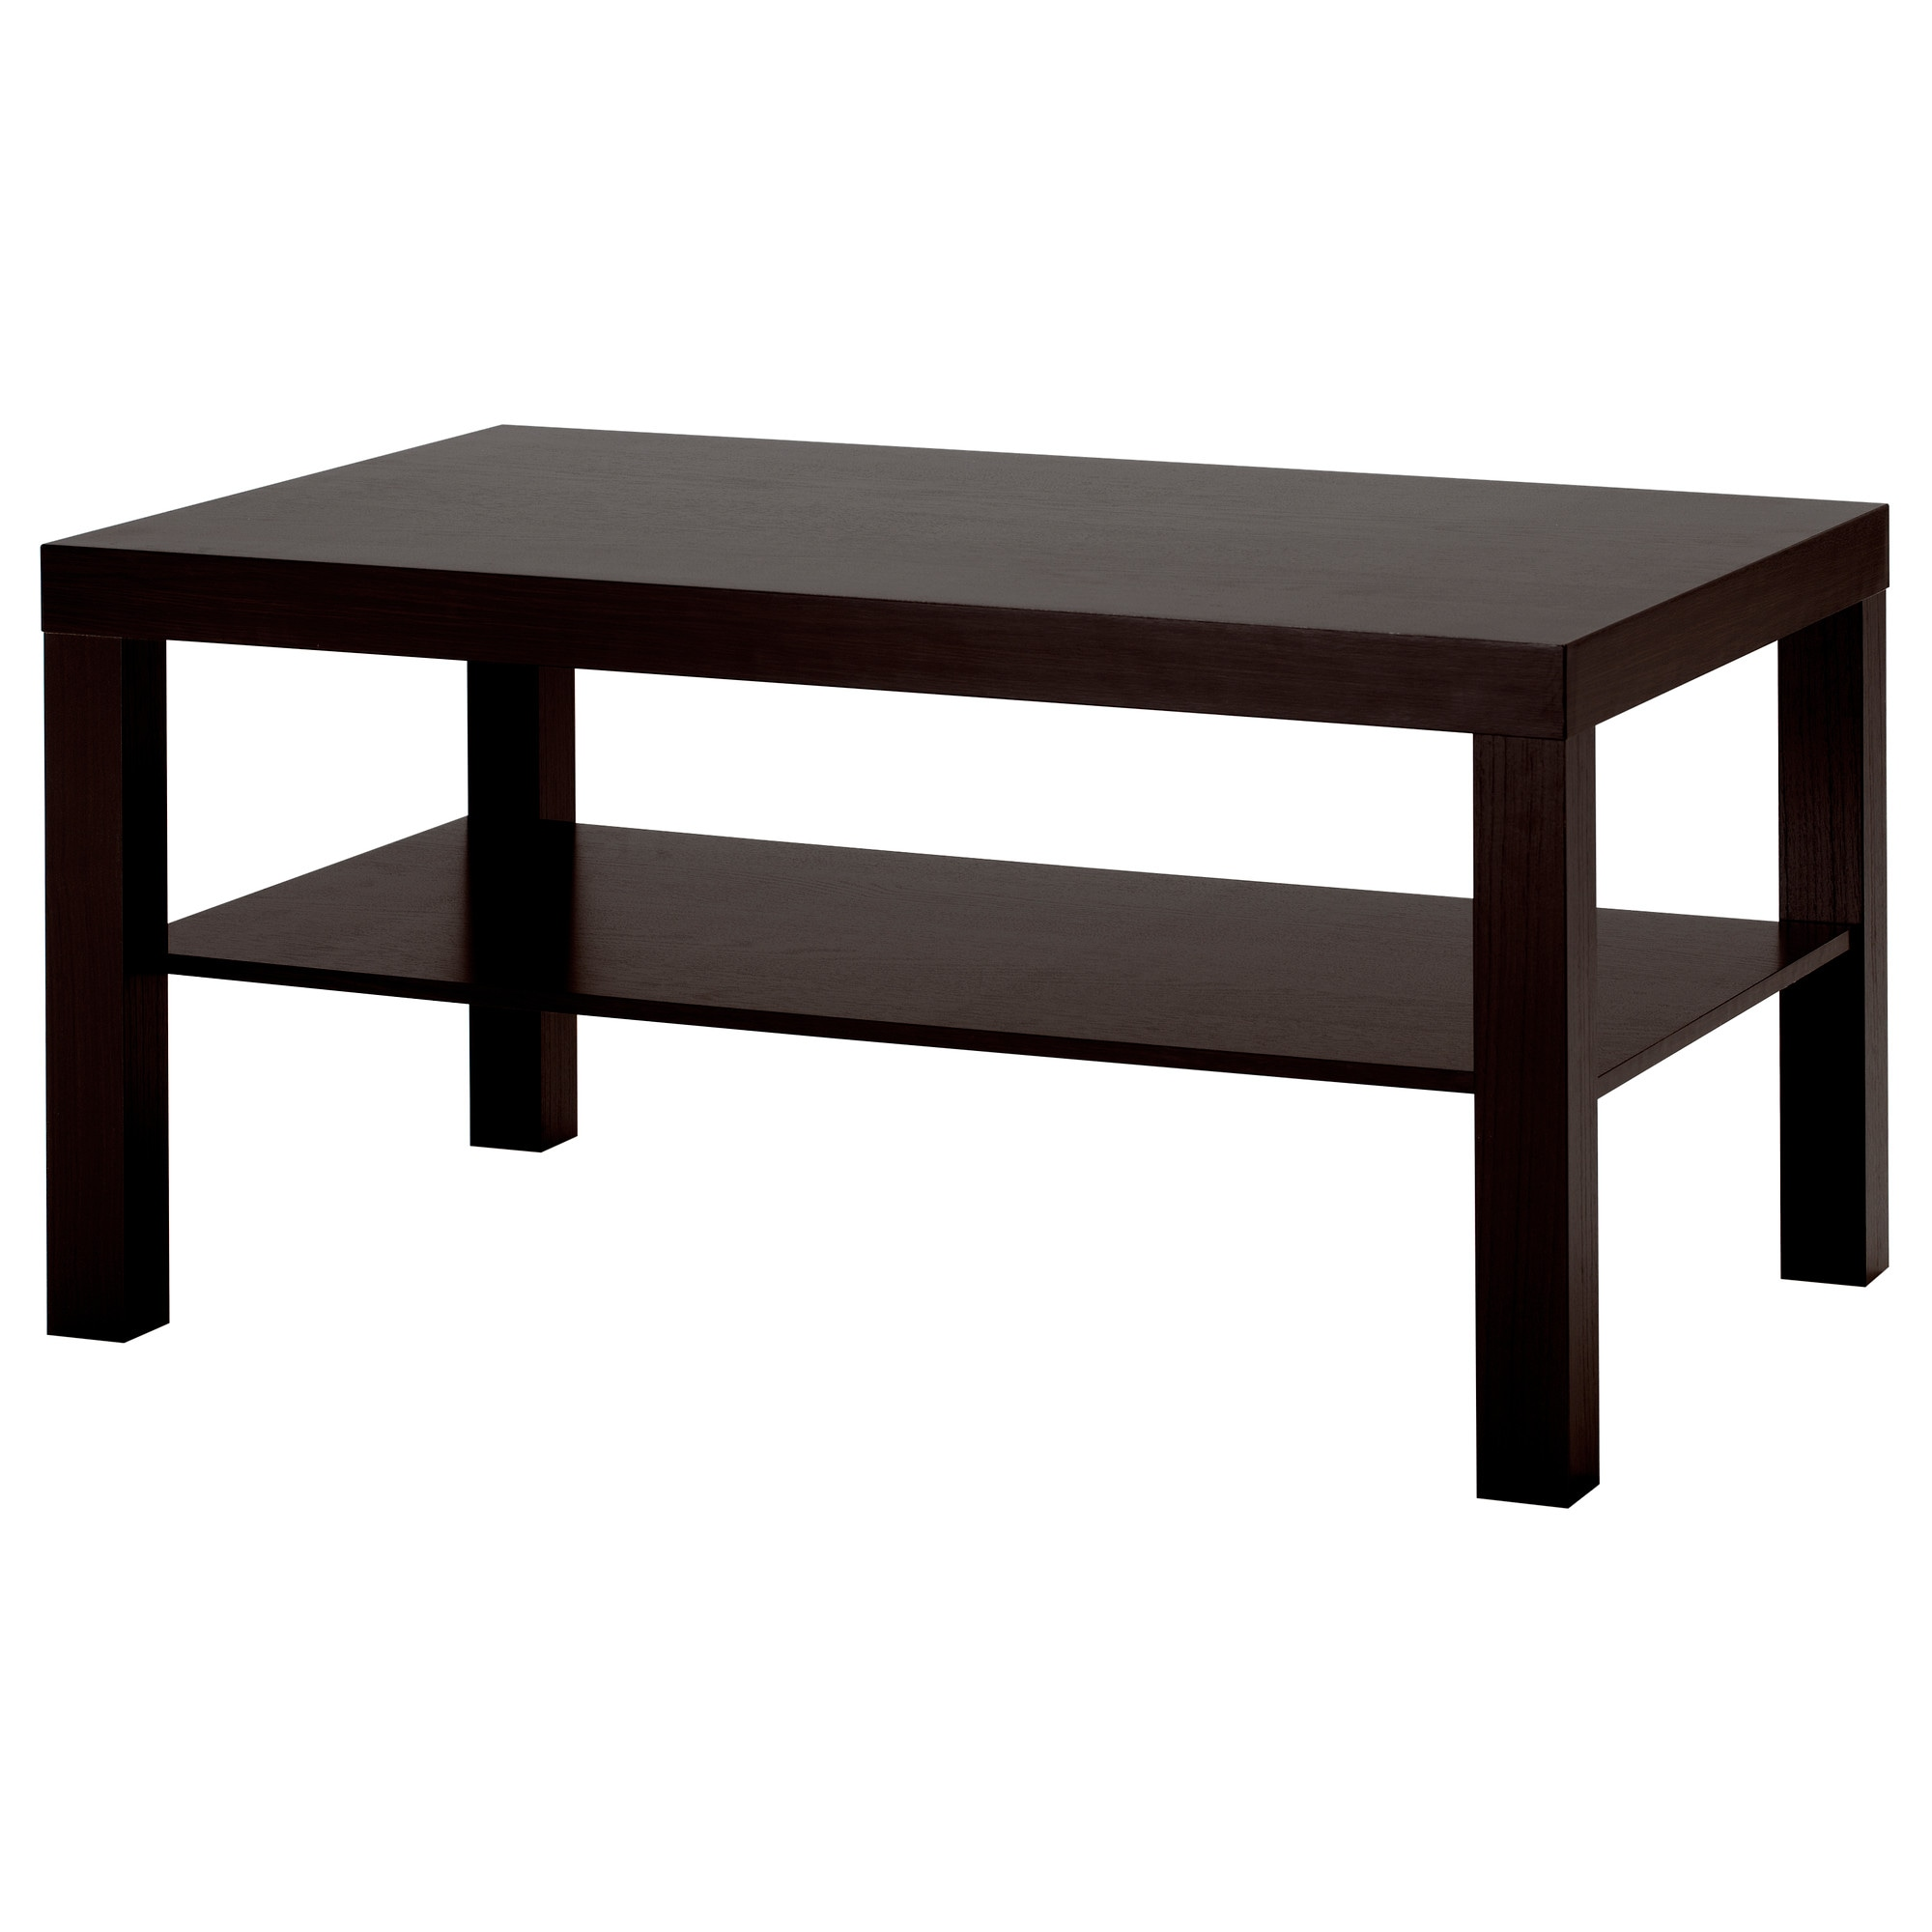 57540_PE163122_S5 Incroyable De Table Basse Lack Ikea